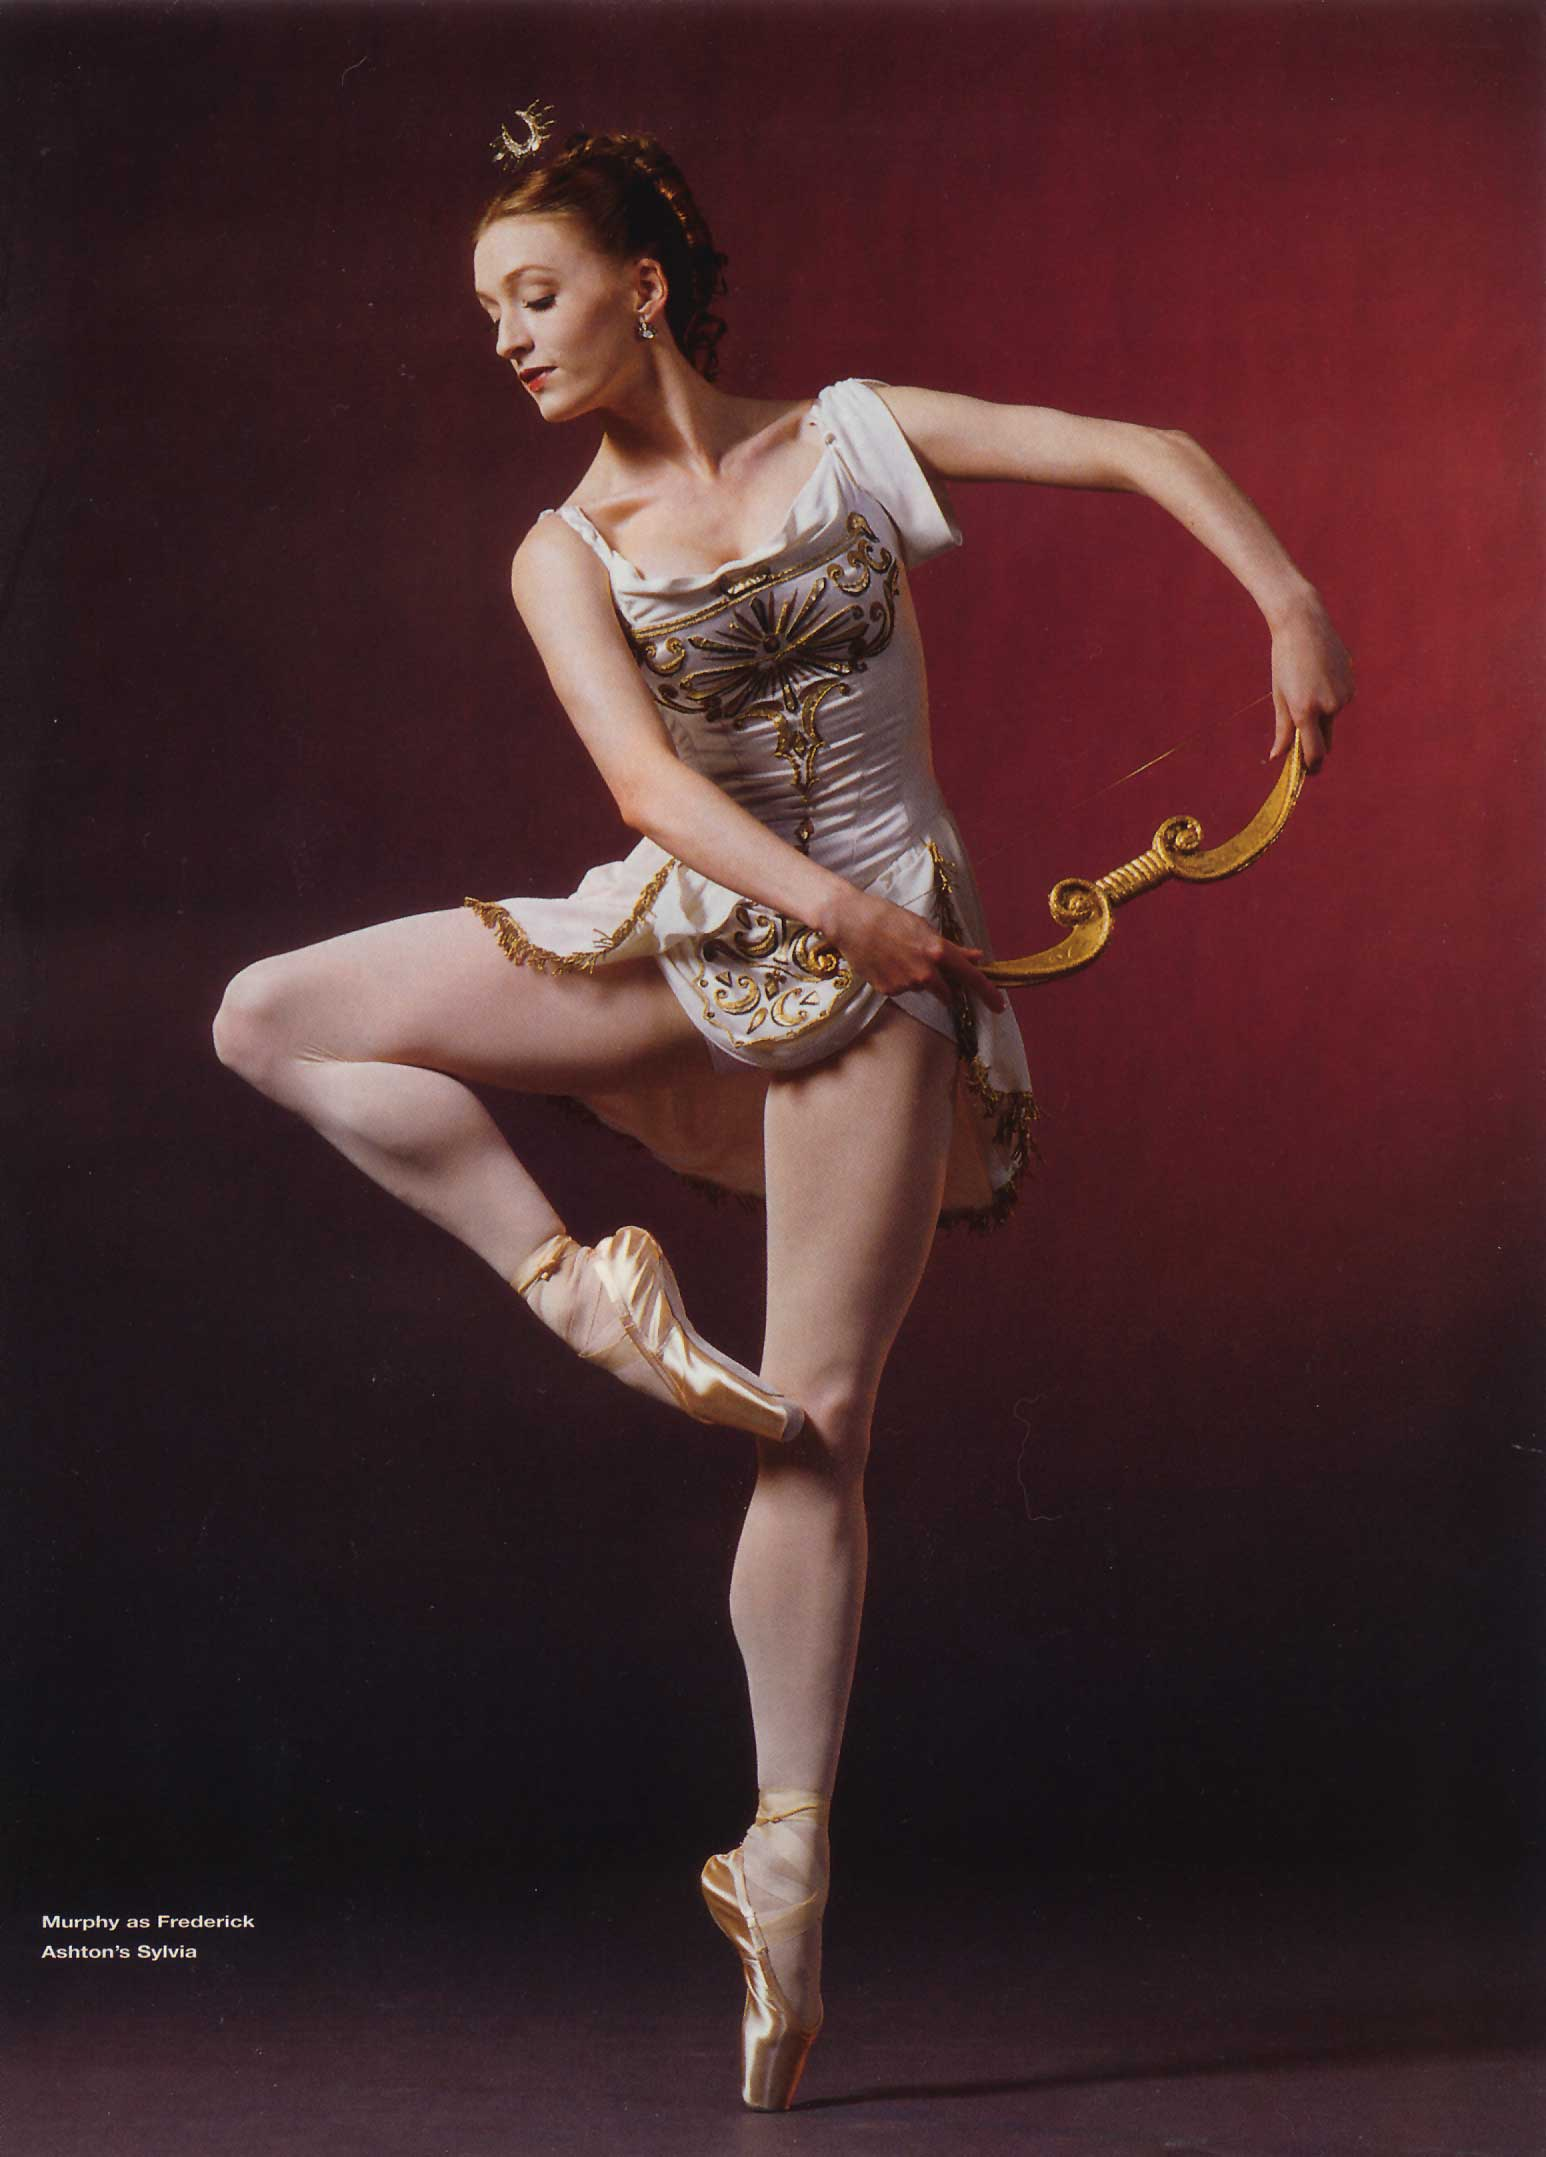 Gillian in Pointe Magazine, June 2005.